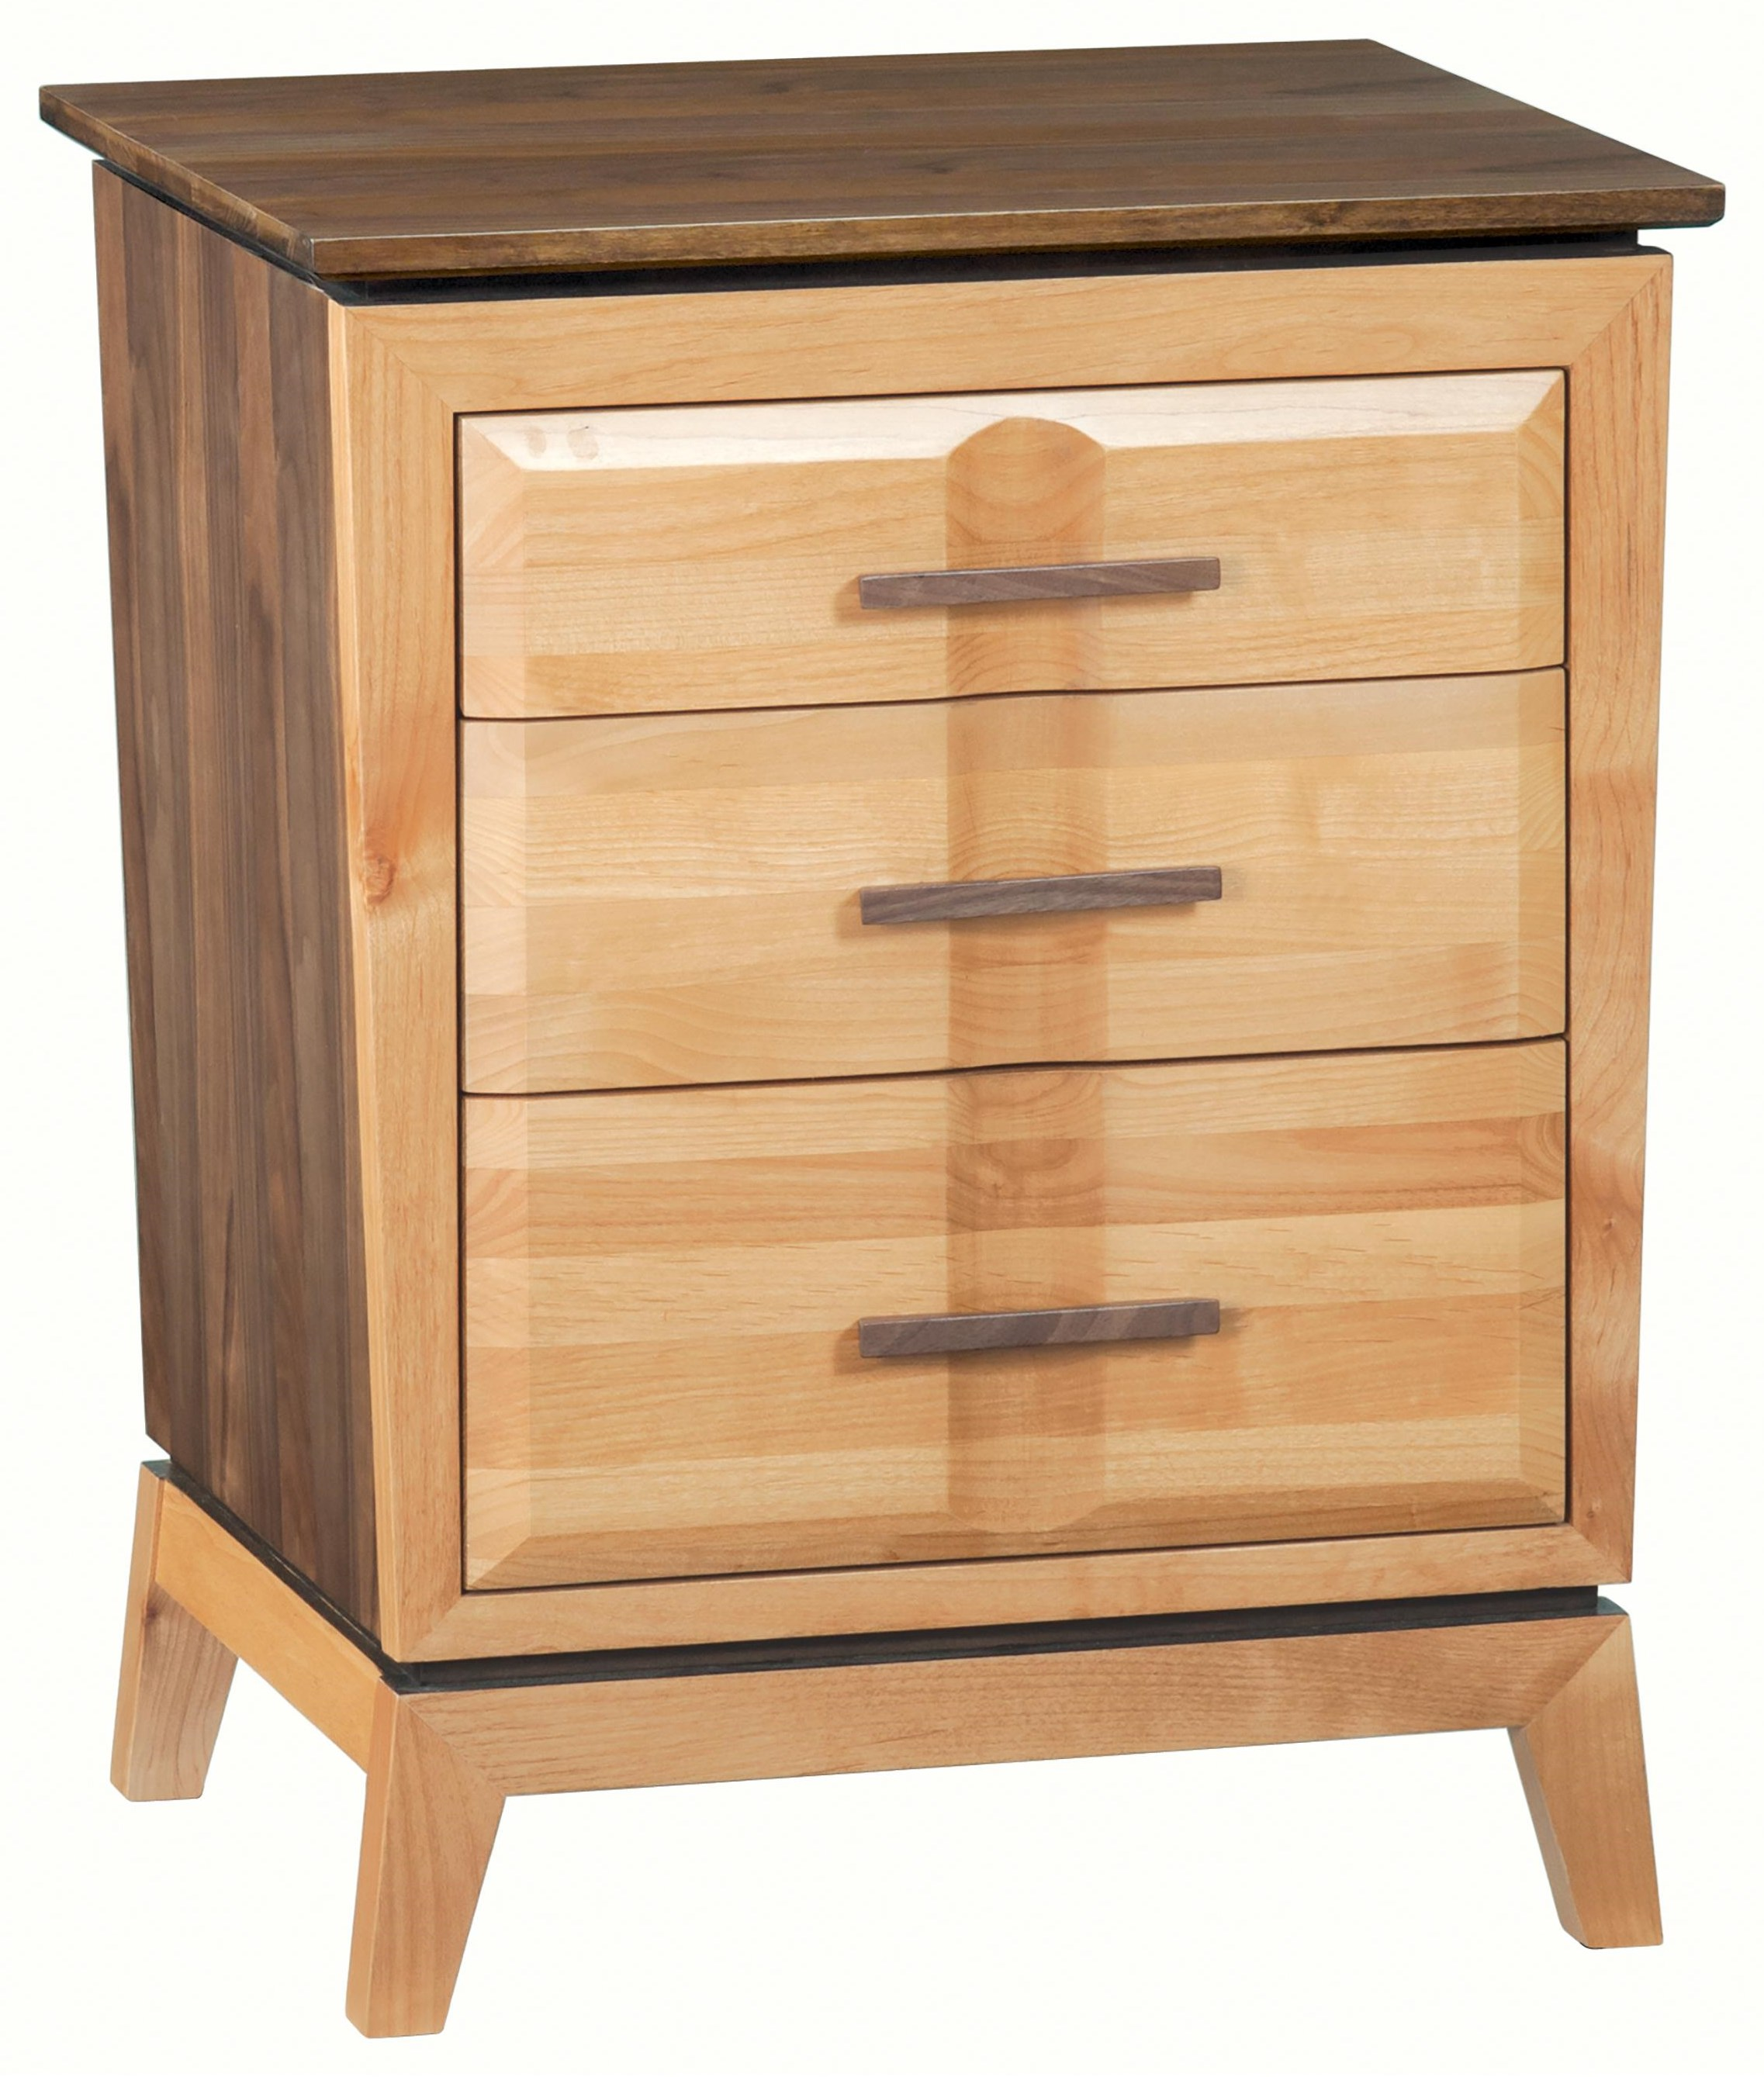 Addison 3-Drawer Nightstand by Whittier Wood at Crowley Furniture & Mattress